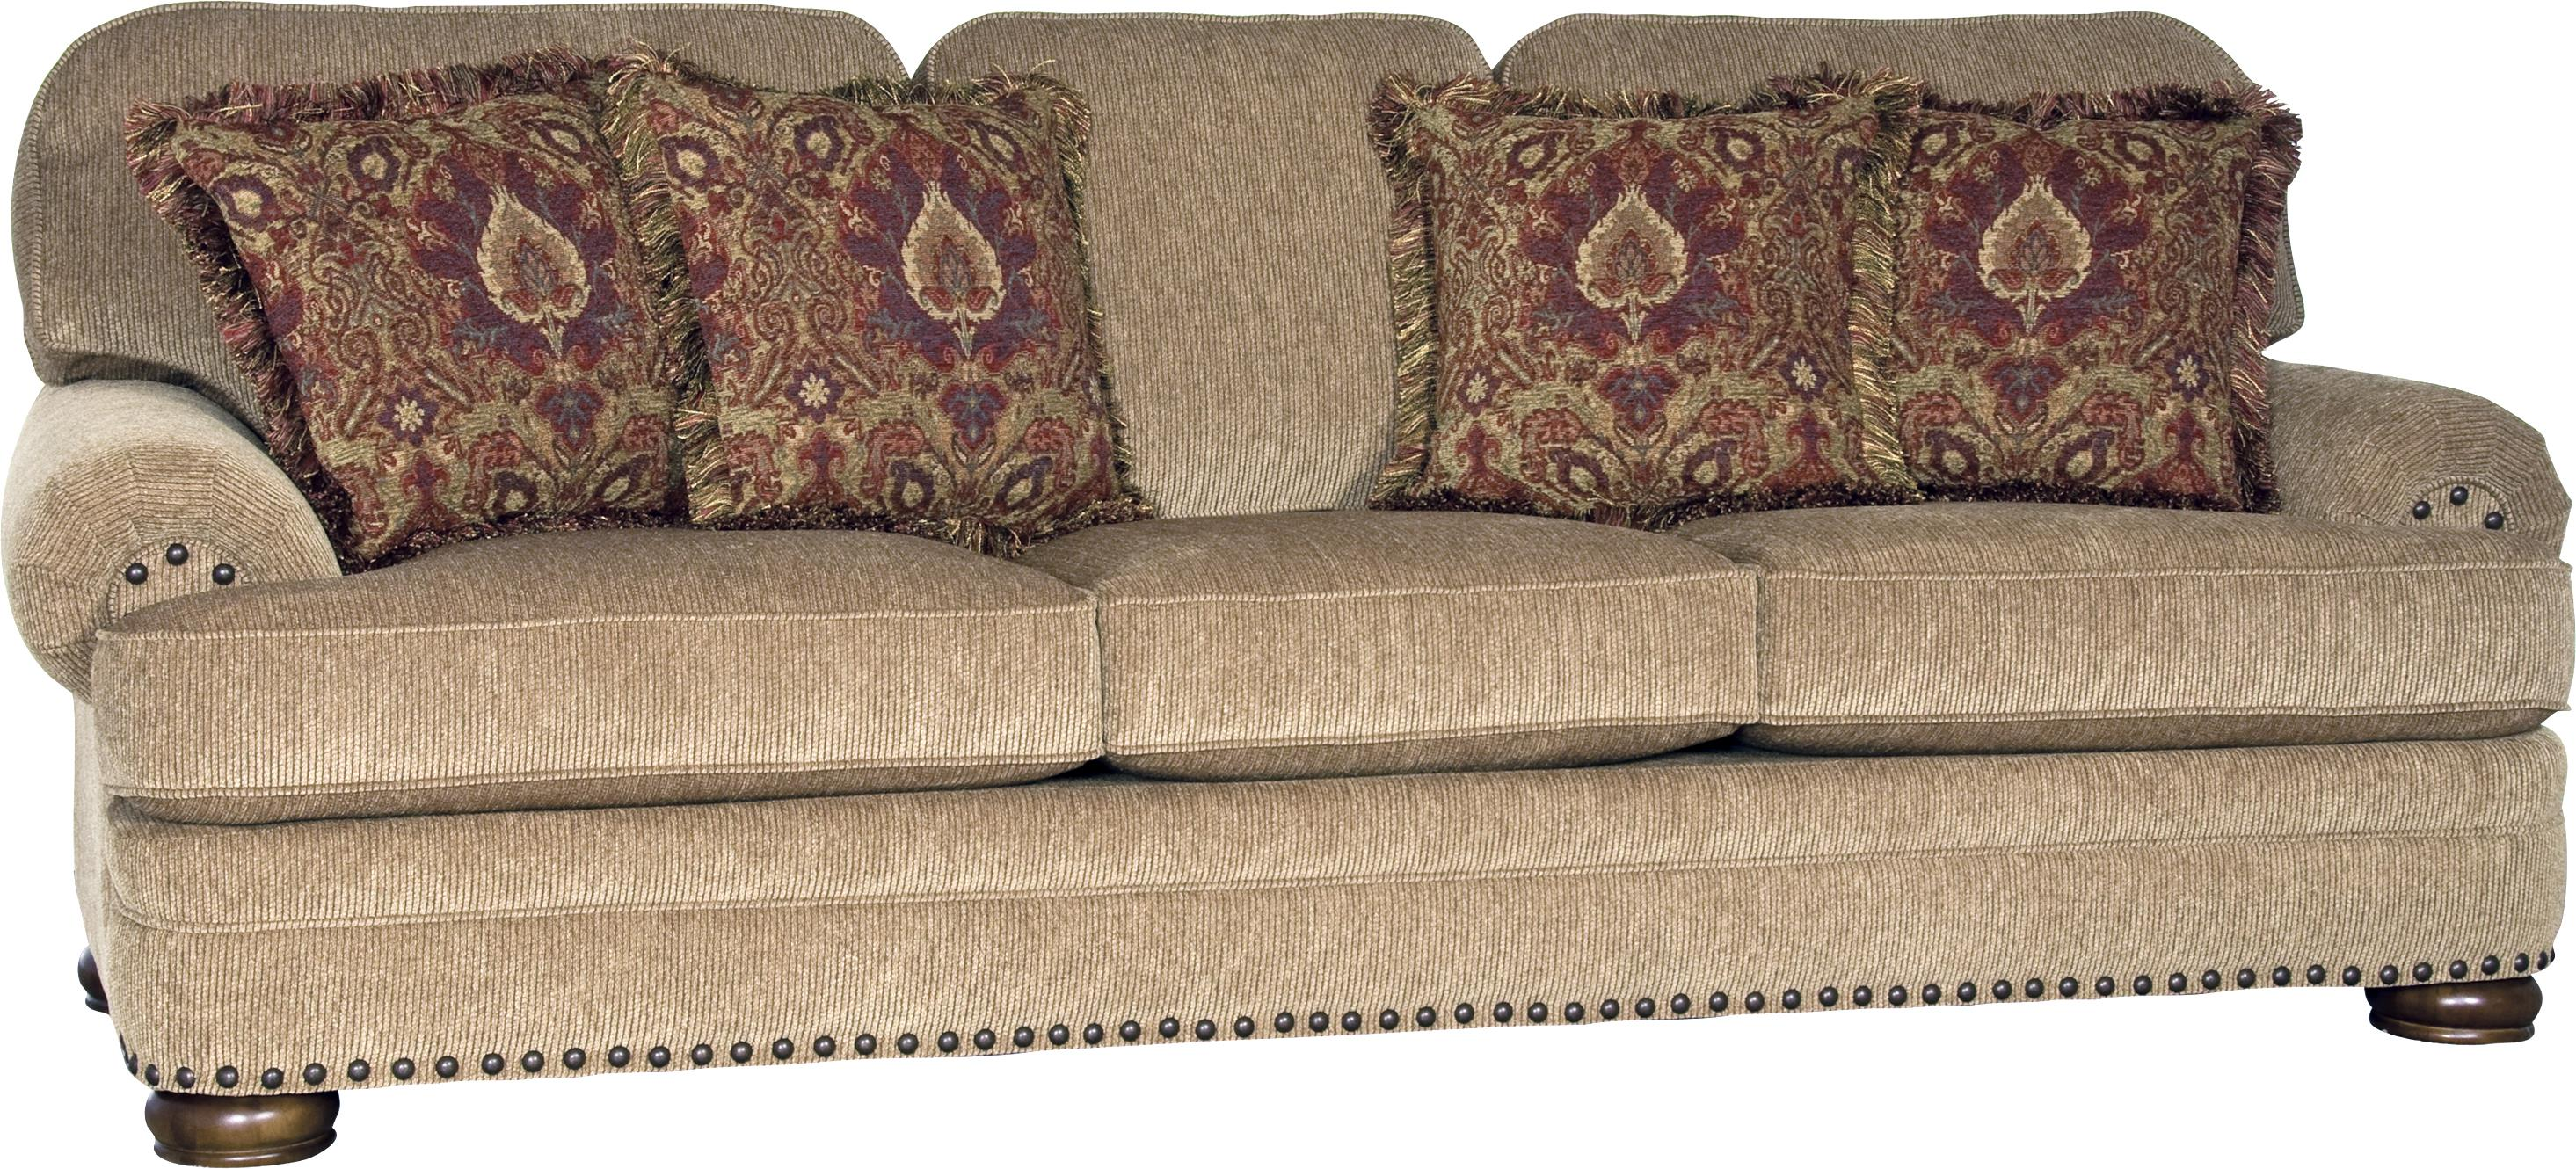 Mayo 3620 Traditional Sofa   Item Number: 3620F10 MUSEOA